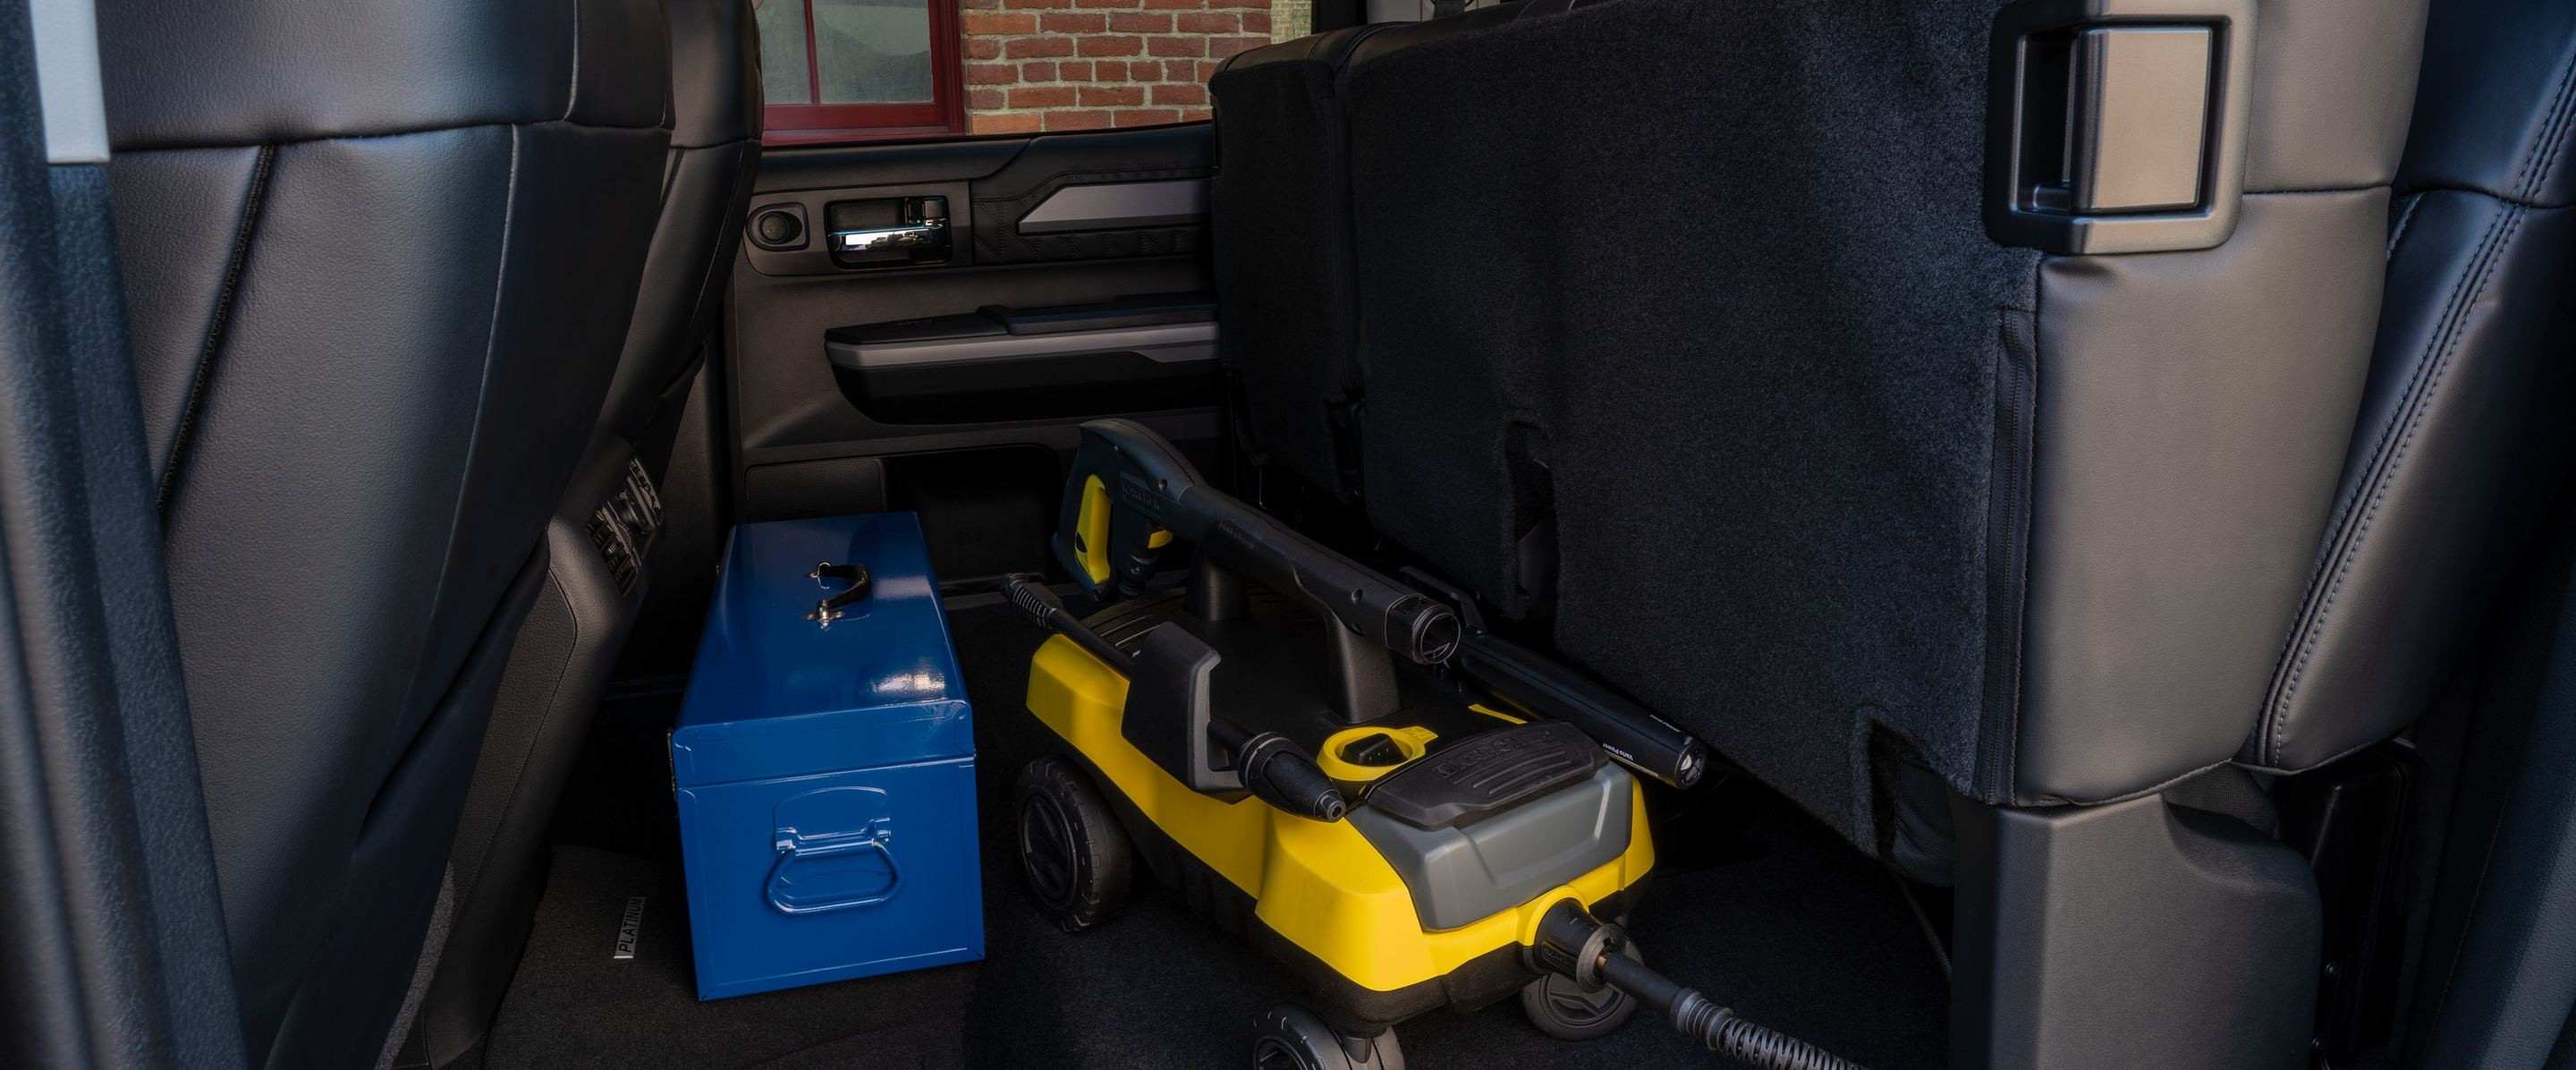 Storage Space in the 2020 Tundra